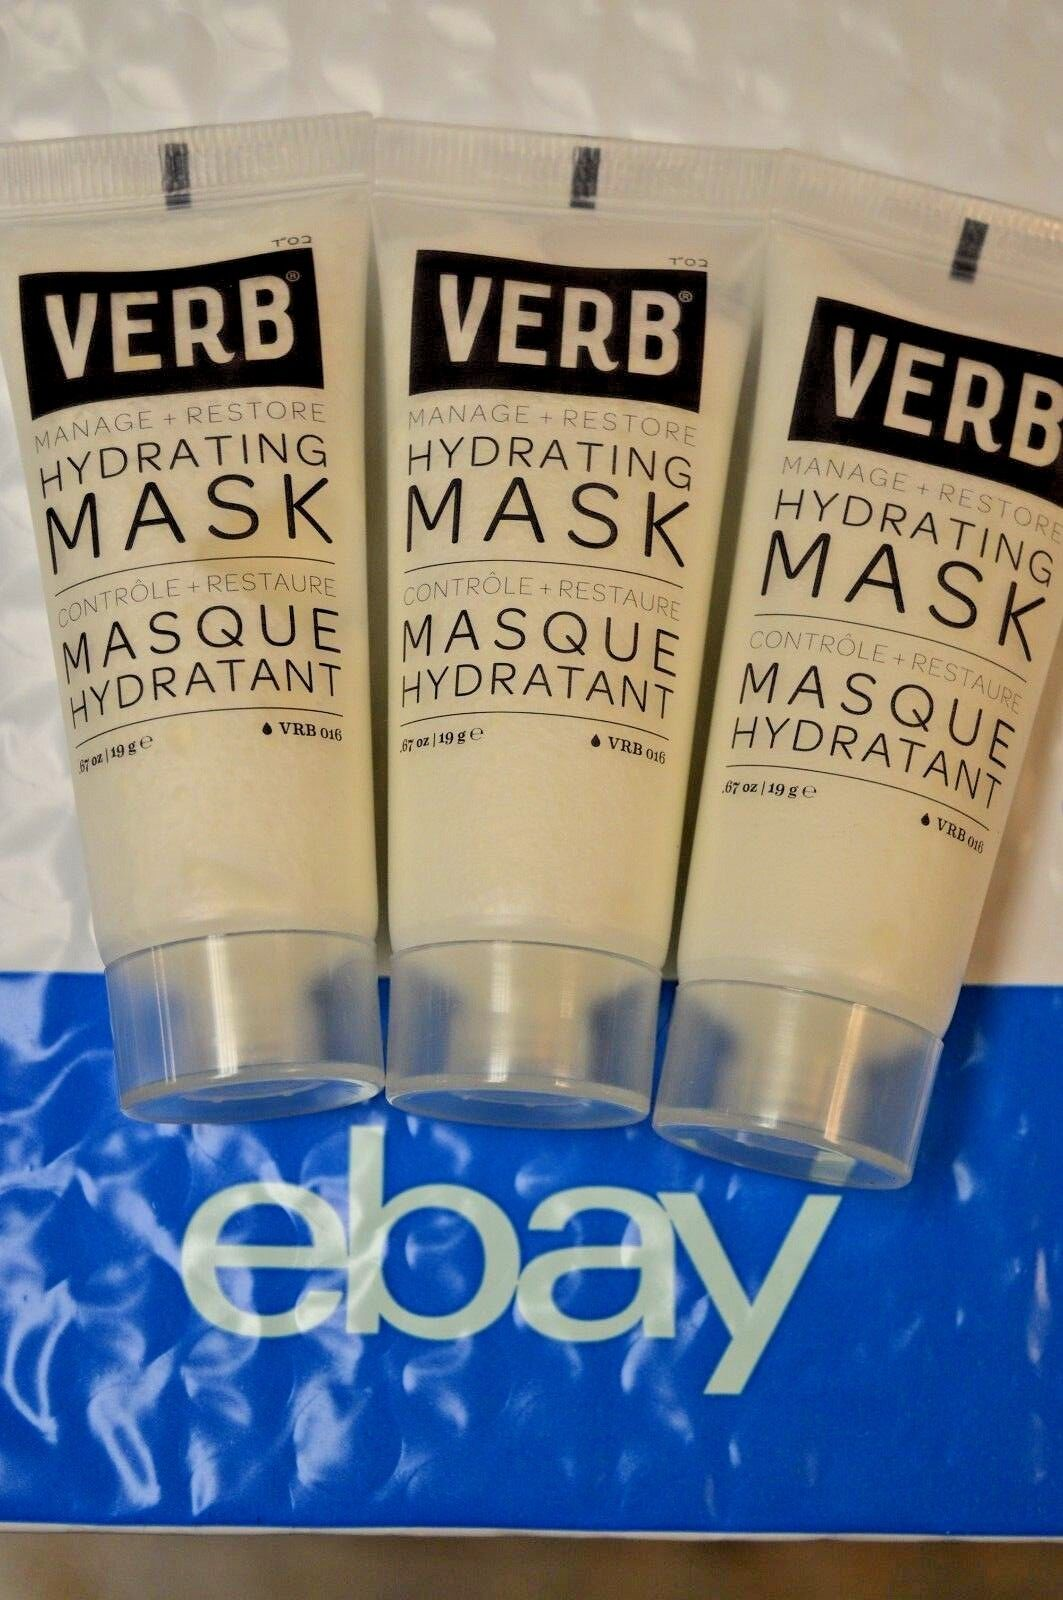 3X VERB Manage + Restore Hydrating Mask for Hair Travel Size